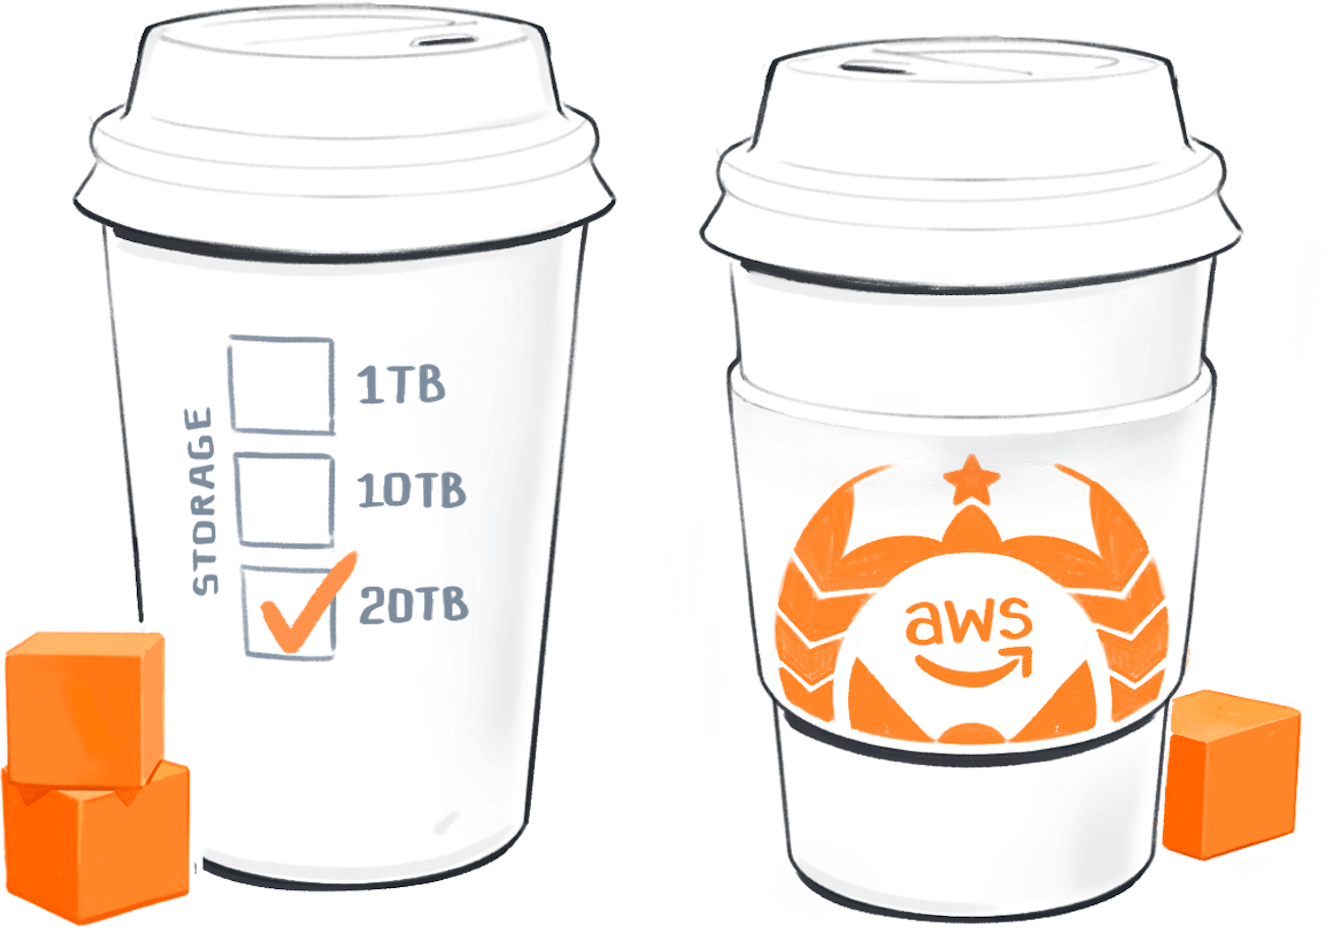 A pair of coffee cups bearing a logo similar to starbucks, but replaced with amazon's aws logo